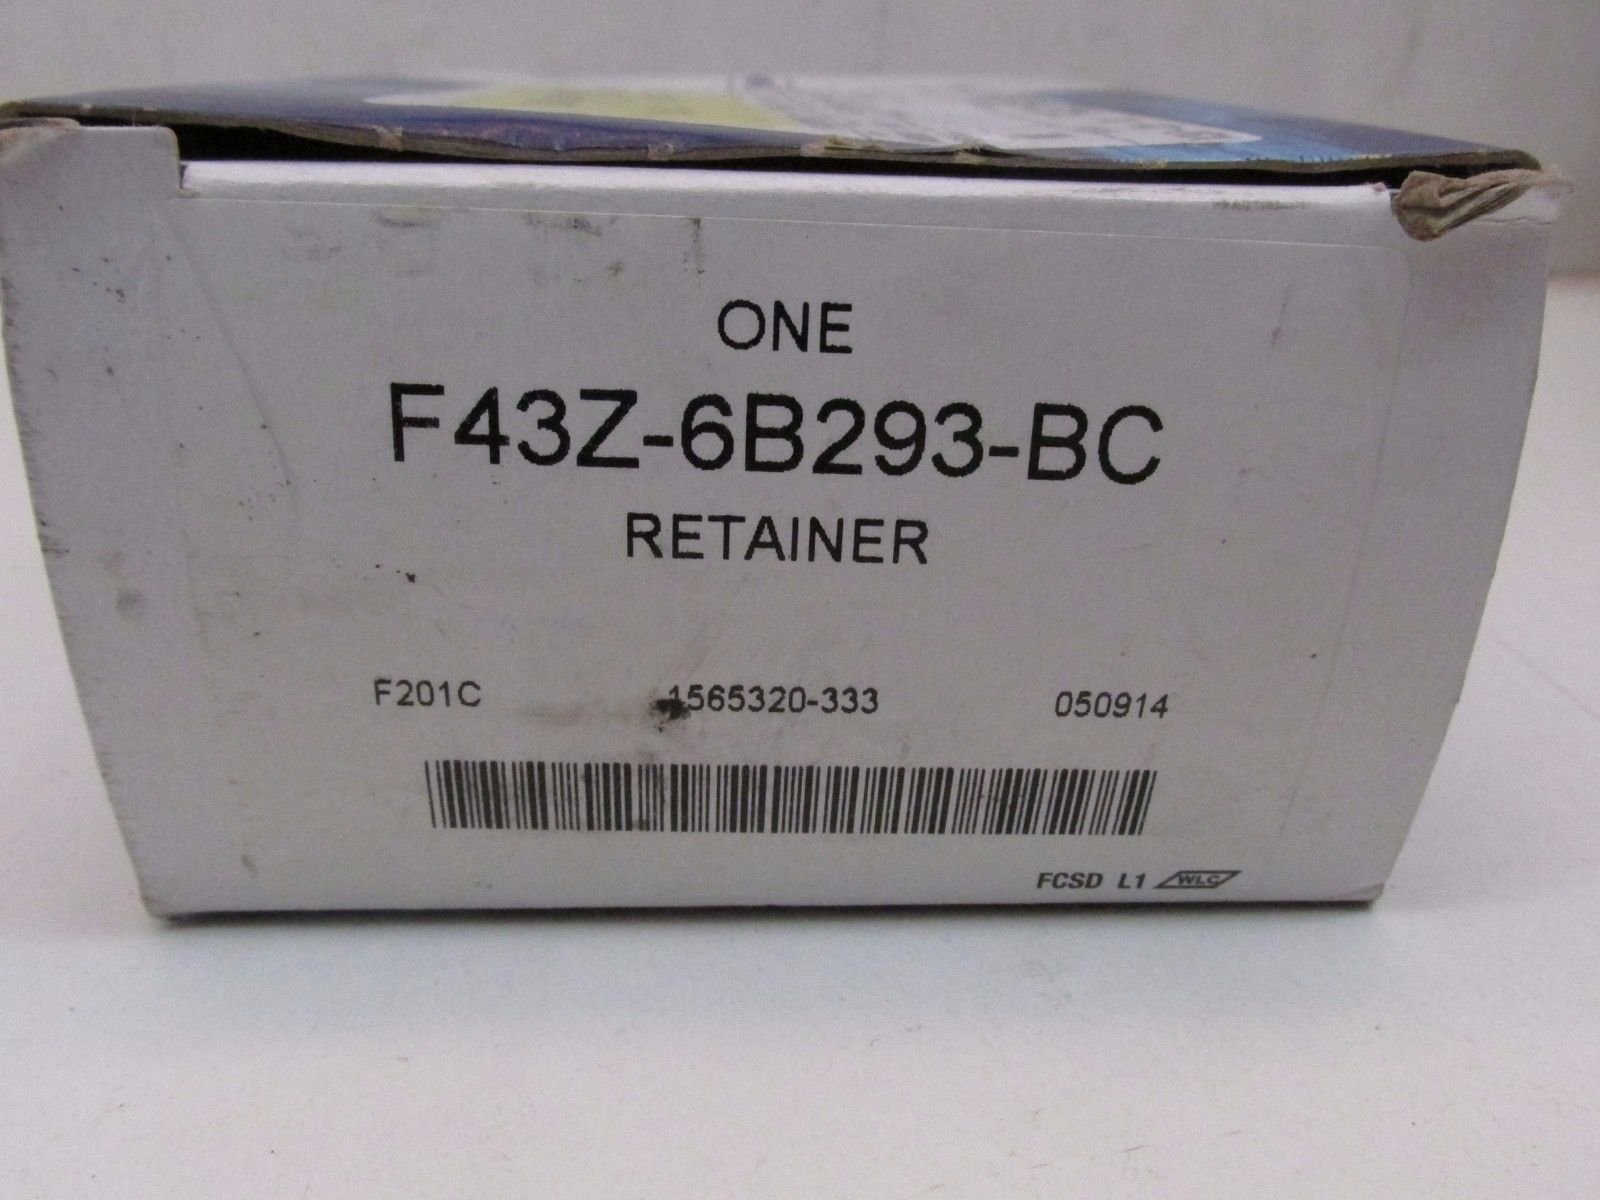 Ford F43Z-6B293-BC - RETAINER by Ford (Image #4)